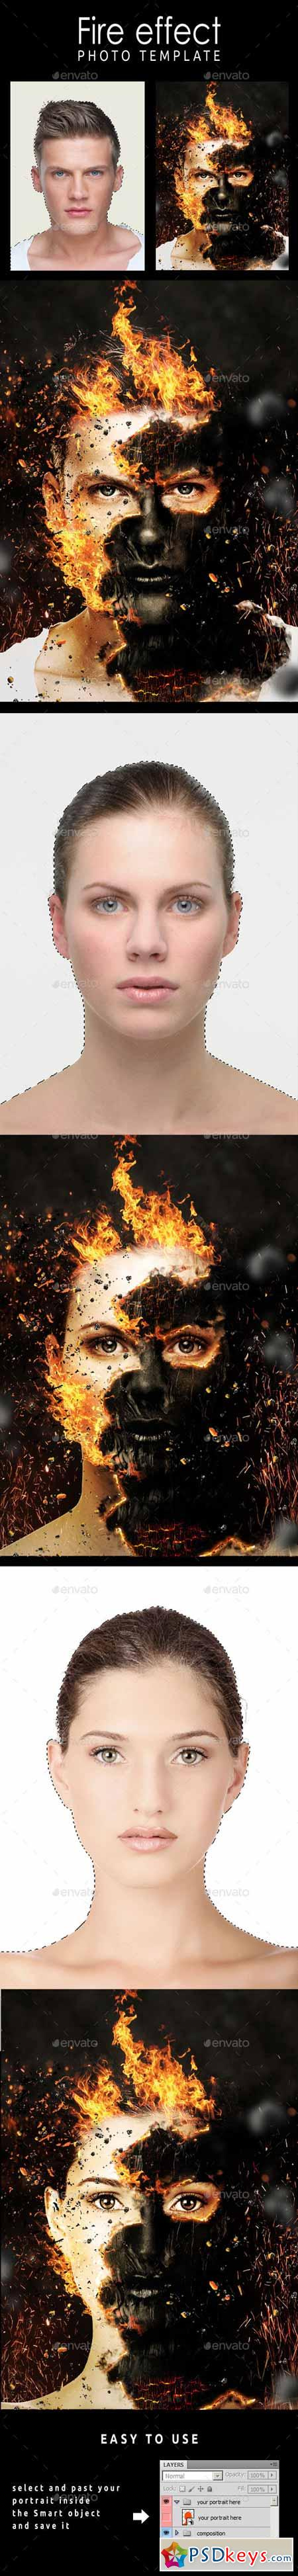 Fire Effect Photo Template 11108155